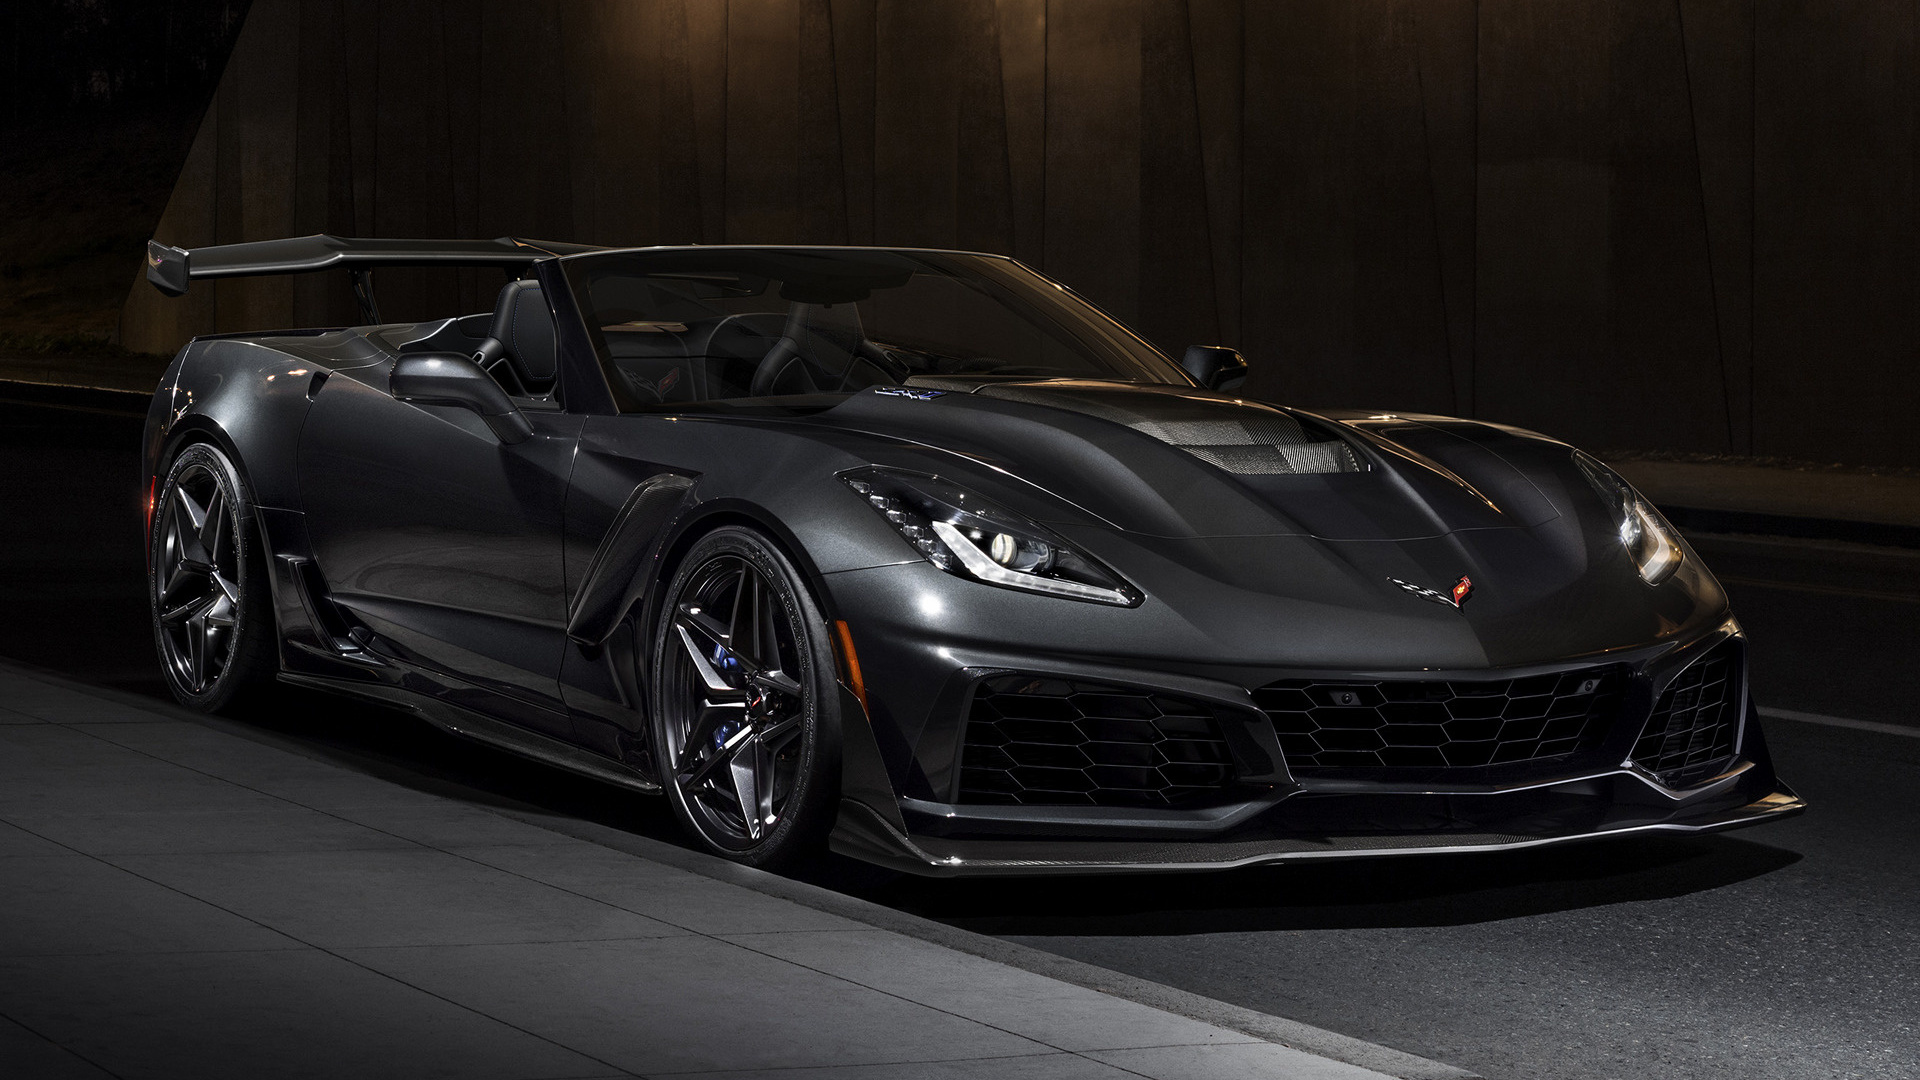 2018 Chevrolet Corvette ZR1 Convertible - Wallpapers and ...